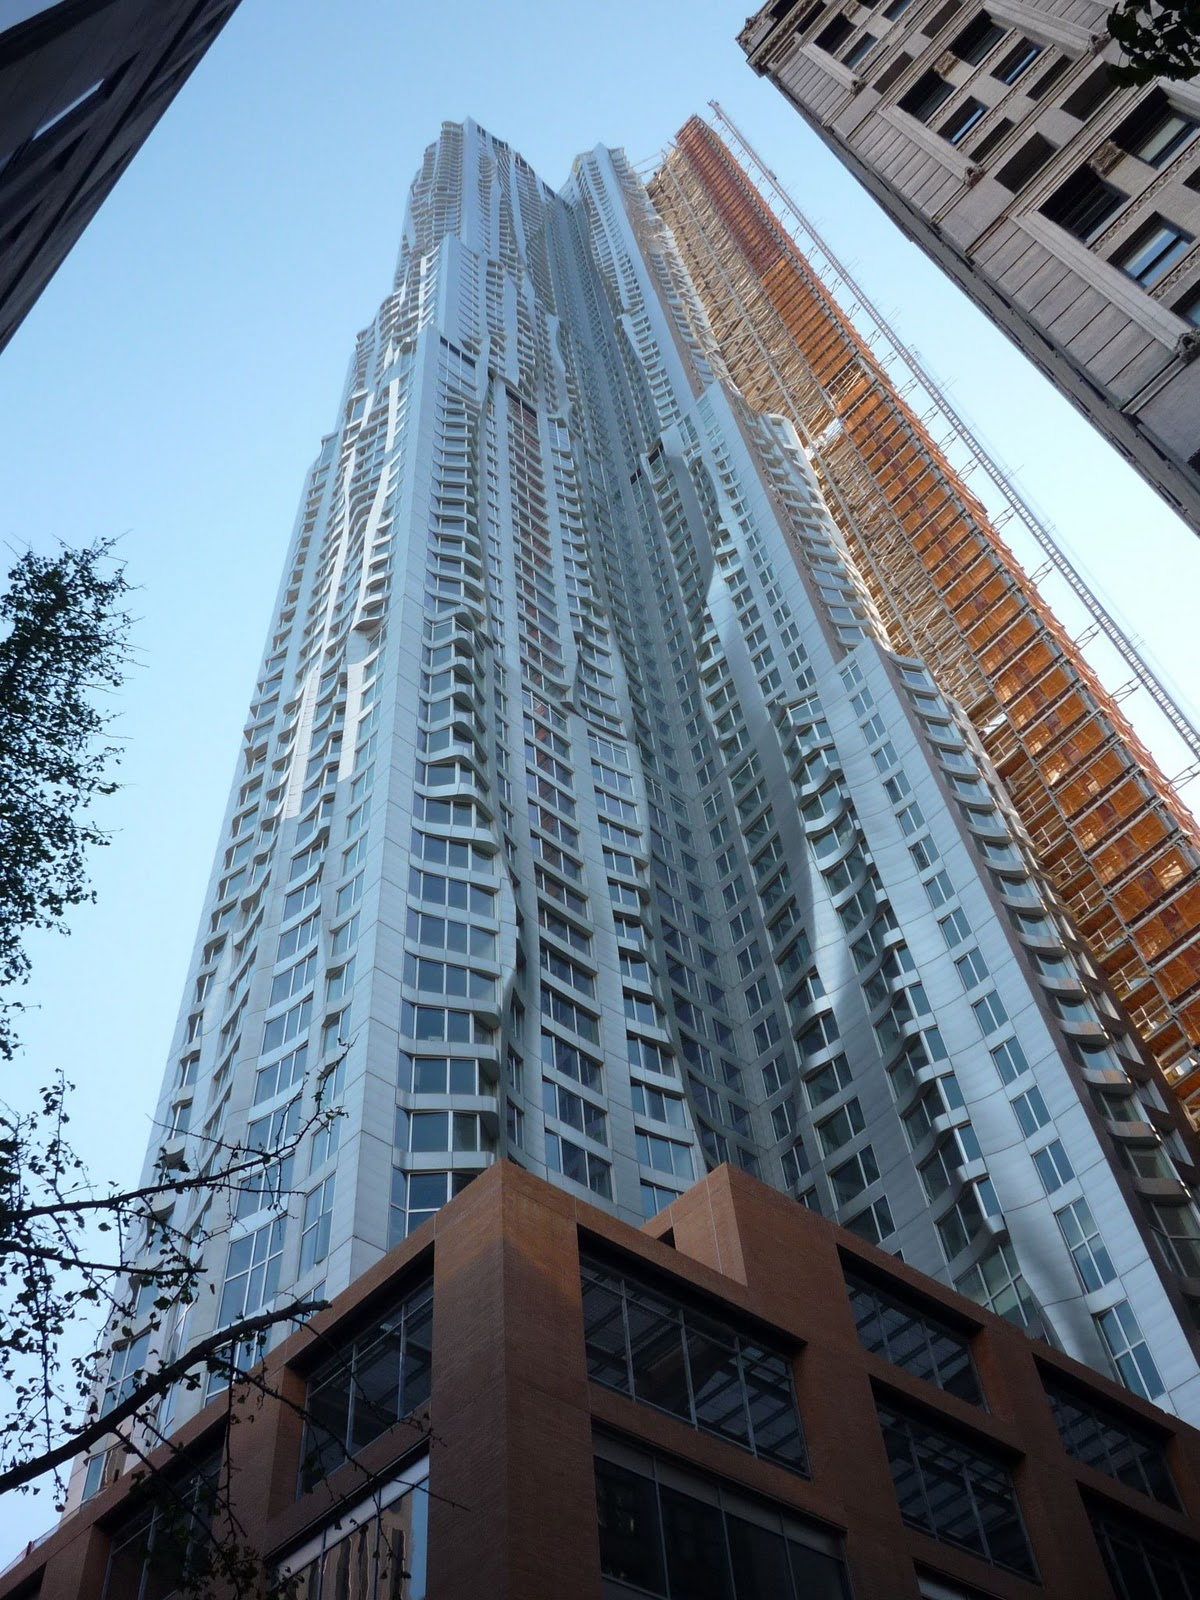 Tallest Residential Building Nyc The Newcomer On Spruce Street Frank Gehry 39s Contribution